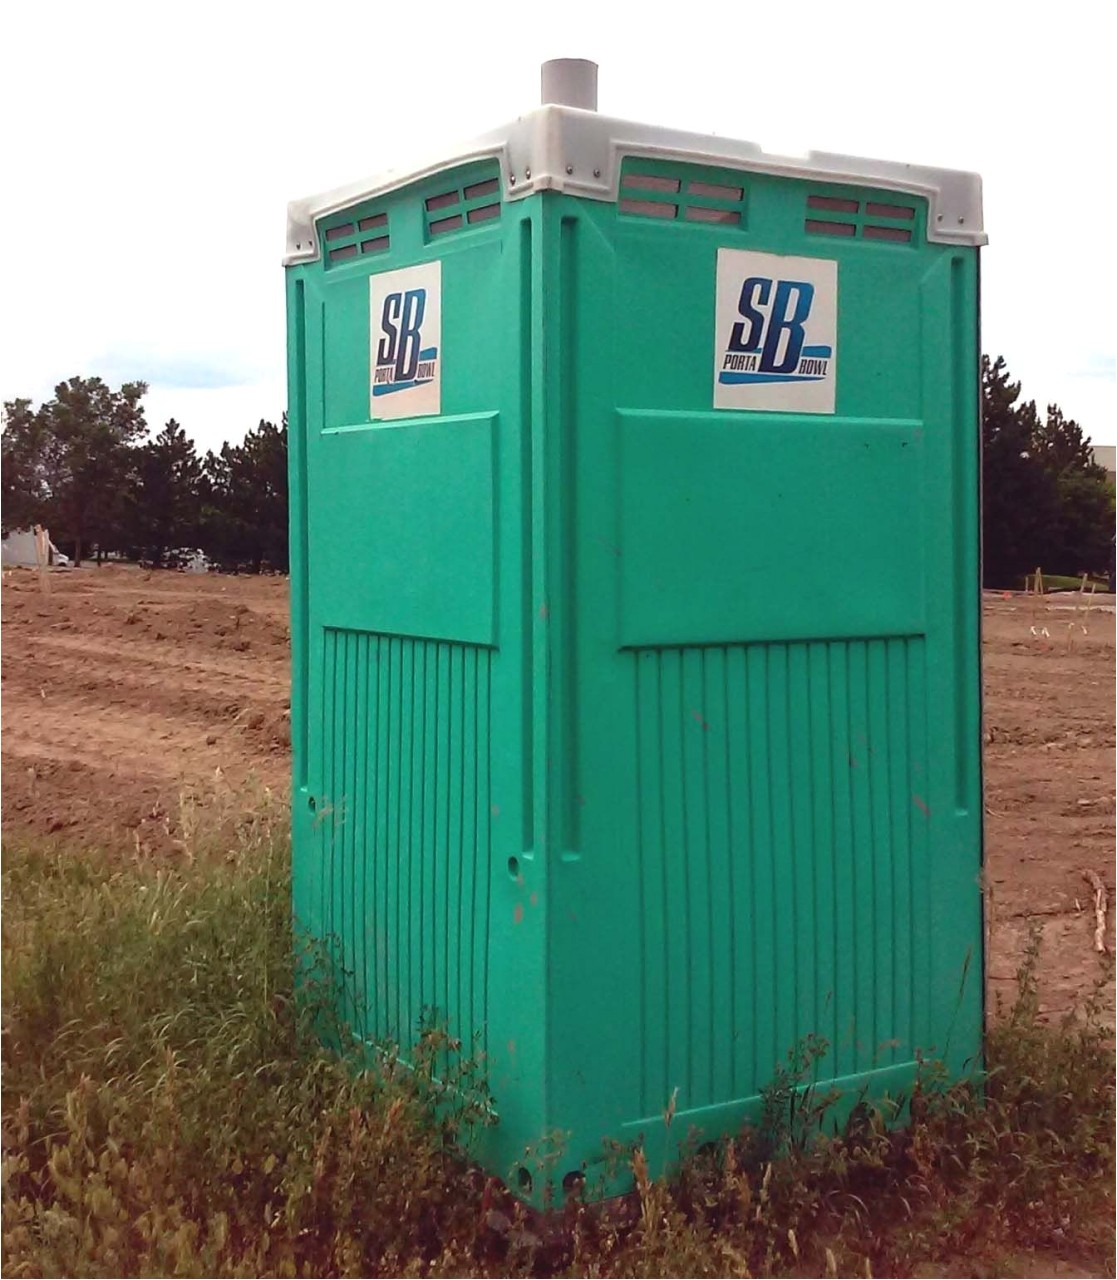 portable bathrooms for rent near me luxury portable bathrooms for rent save porta potty rental and